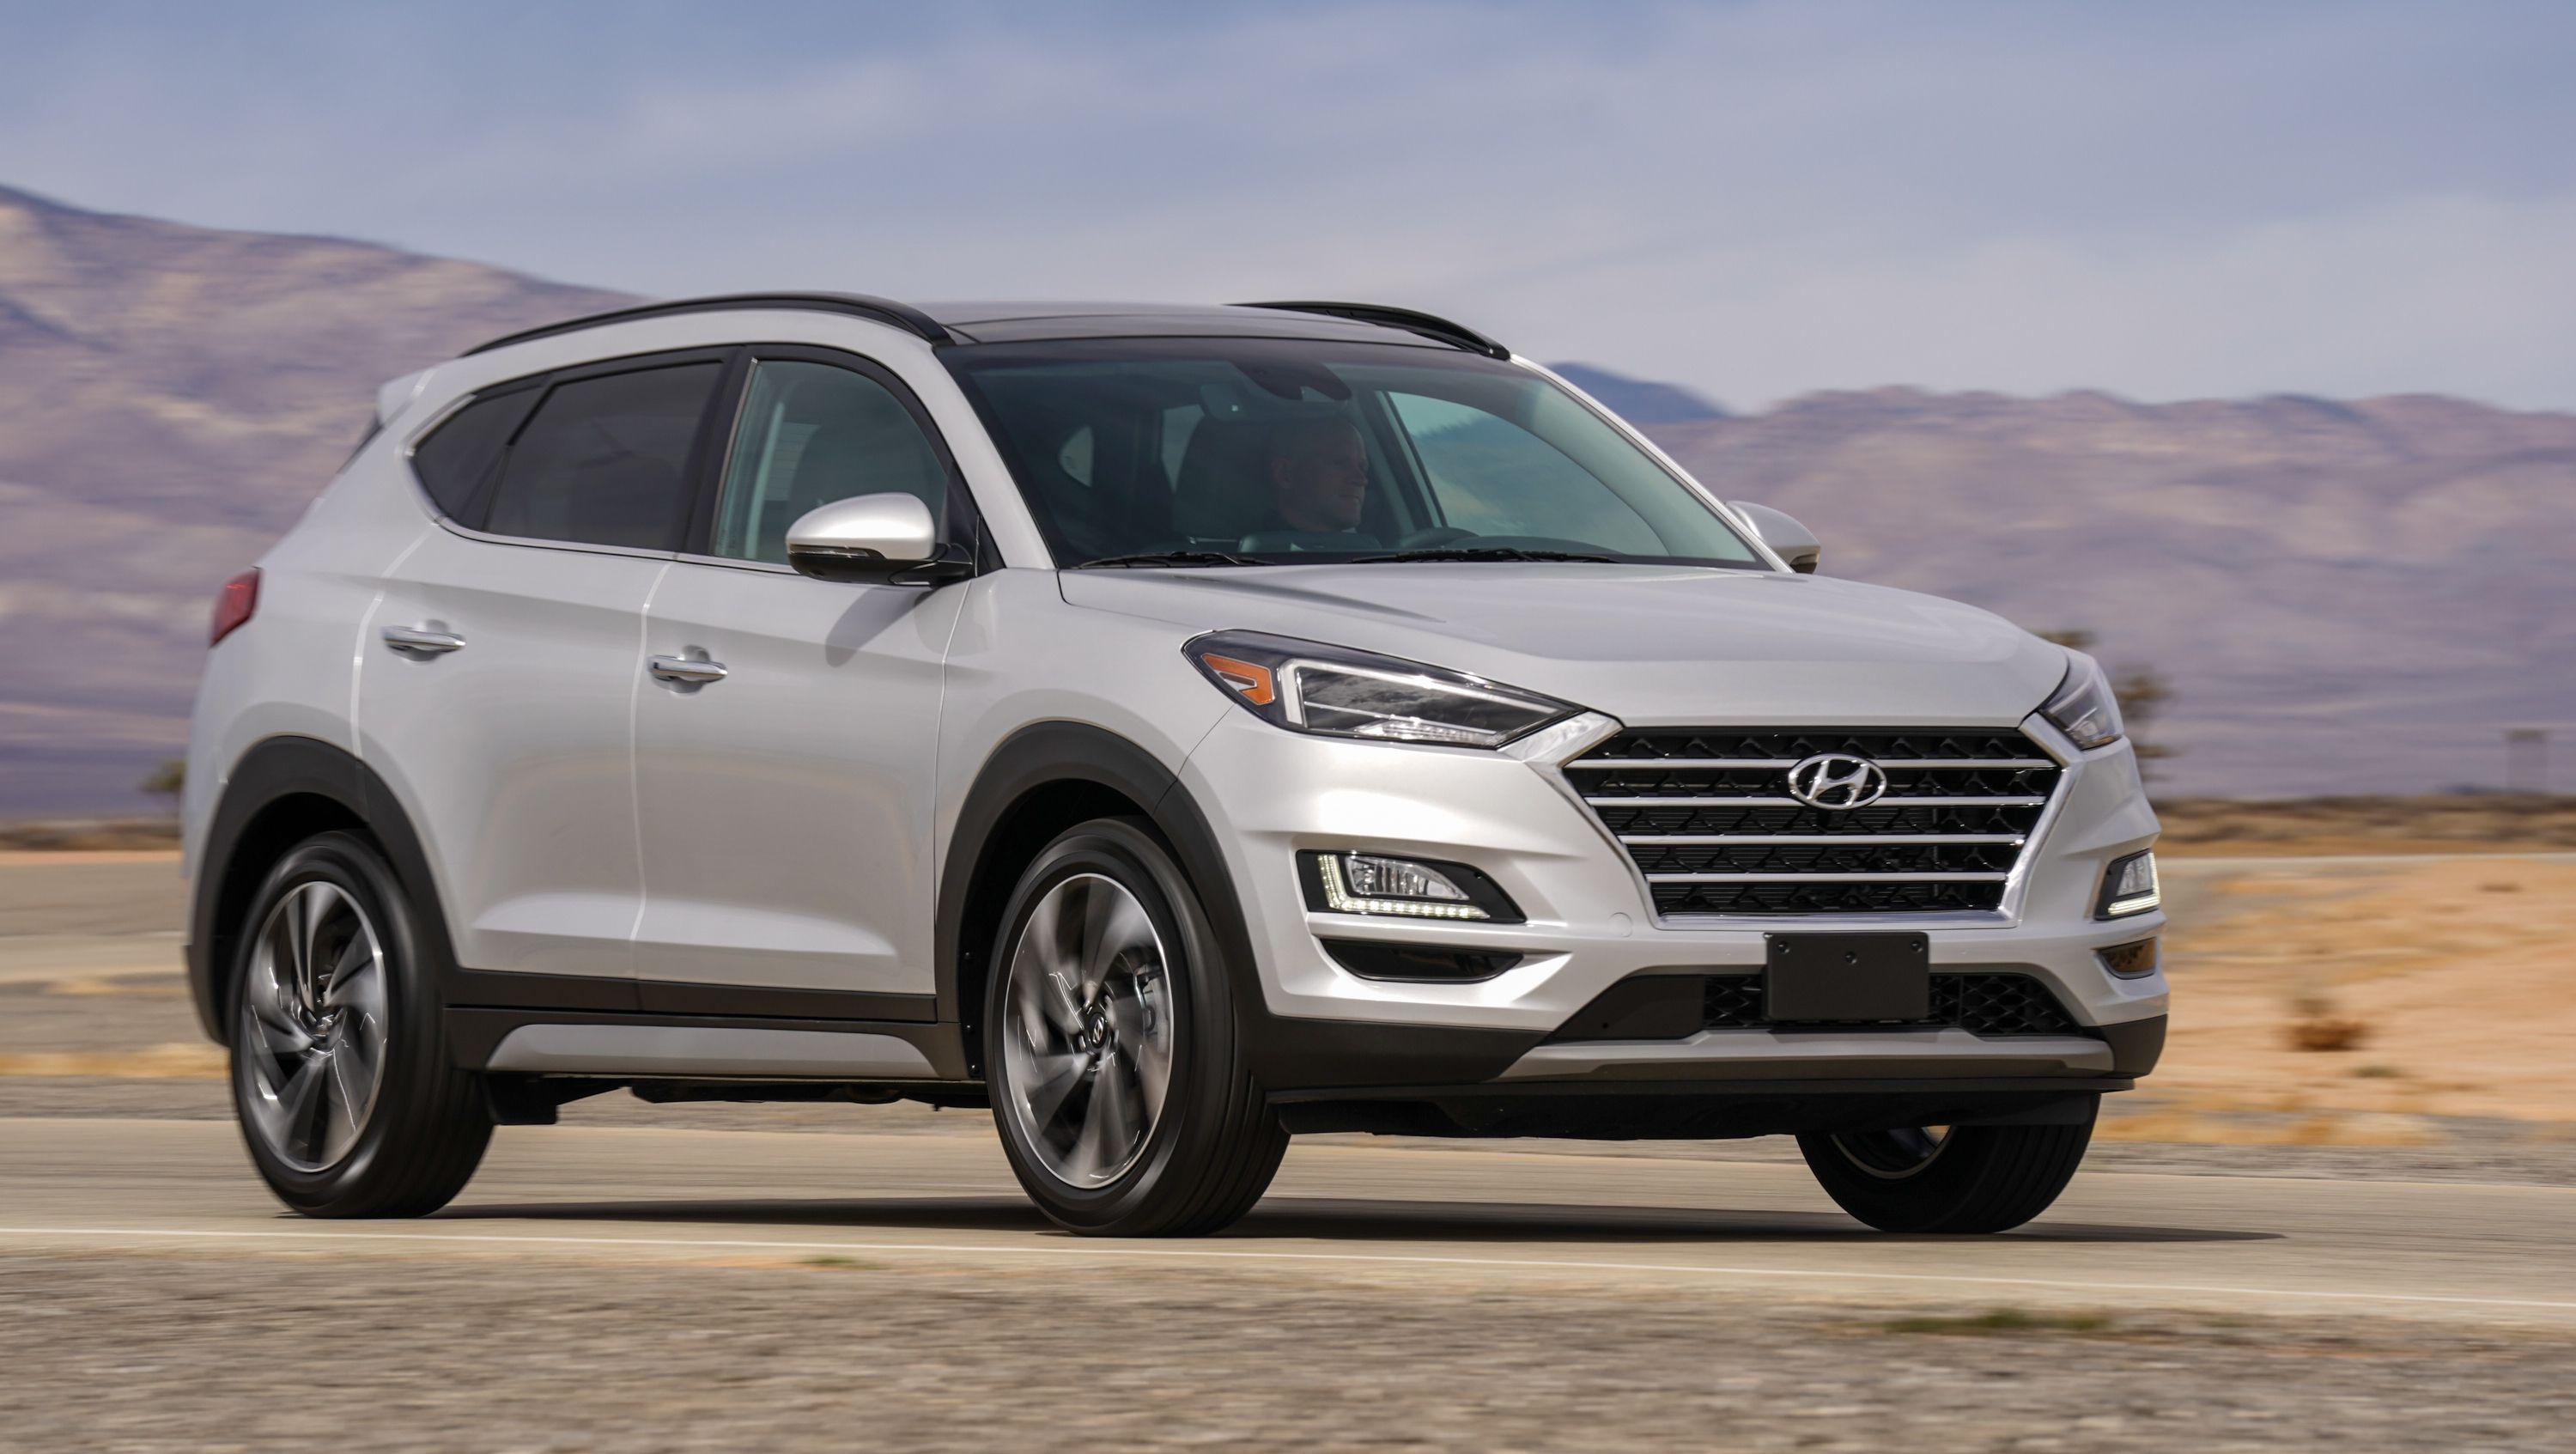 High Performance Suvs Are Becoming A Trend As Hyundai Preps A Tucson N For 2021 Top Speed Hyundai Tucson Subcompact Suv Hyundai